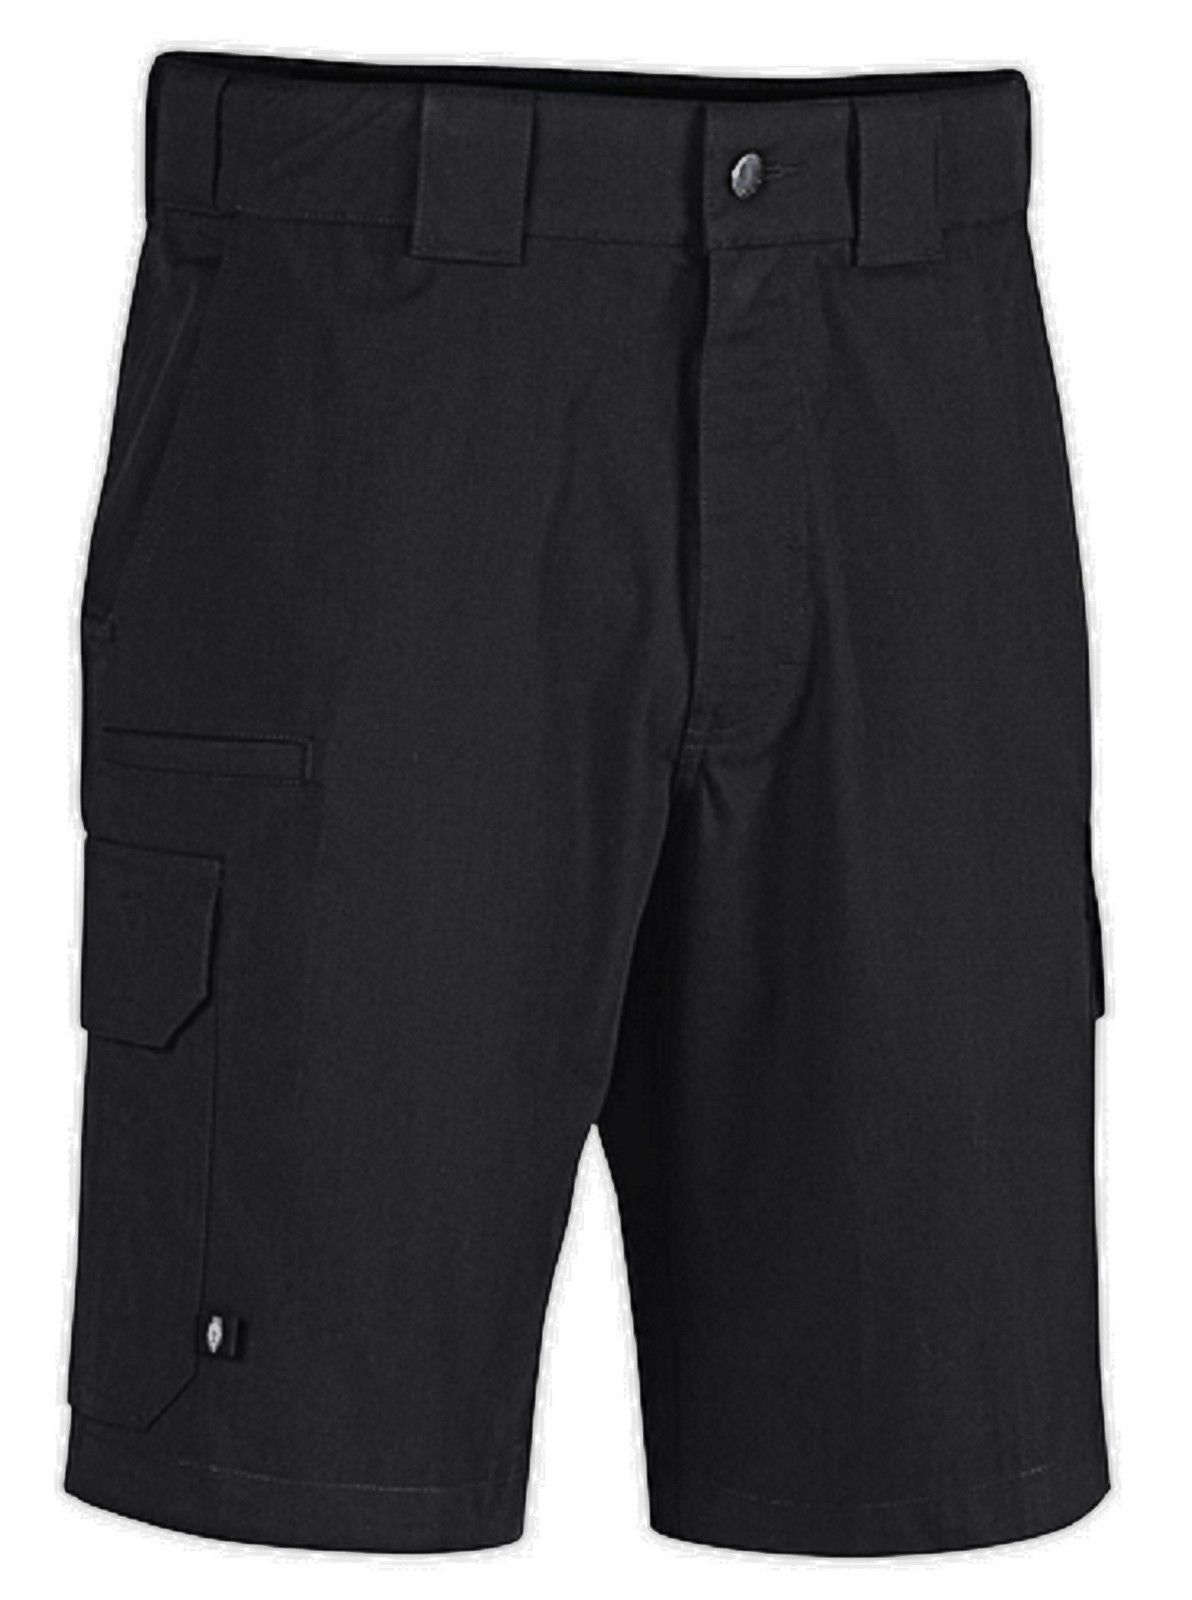 mens relaxed fit tactical cargo shorts dickies stretch ripstop duty short